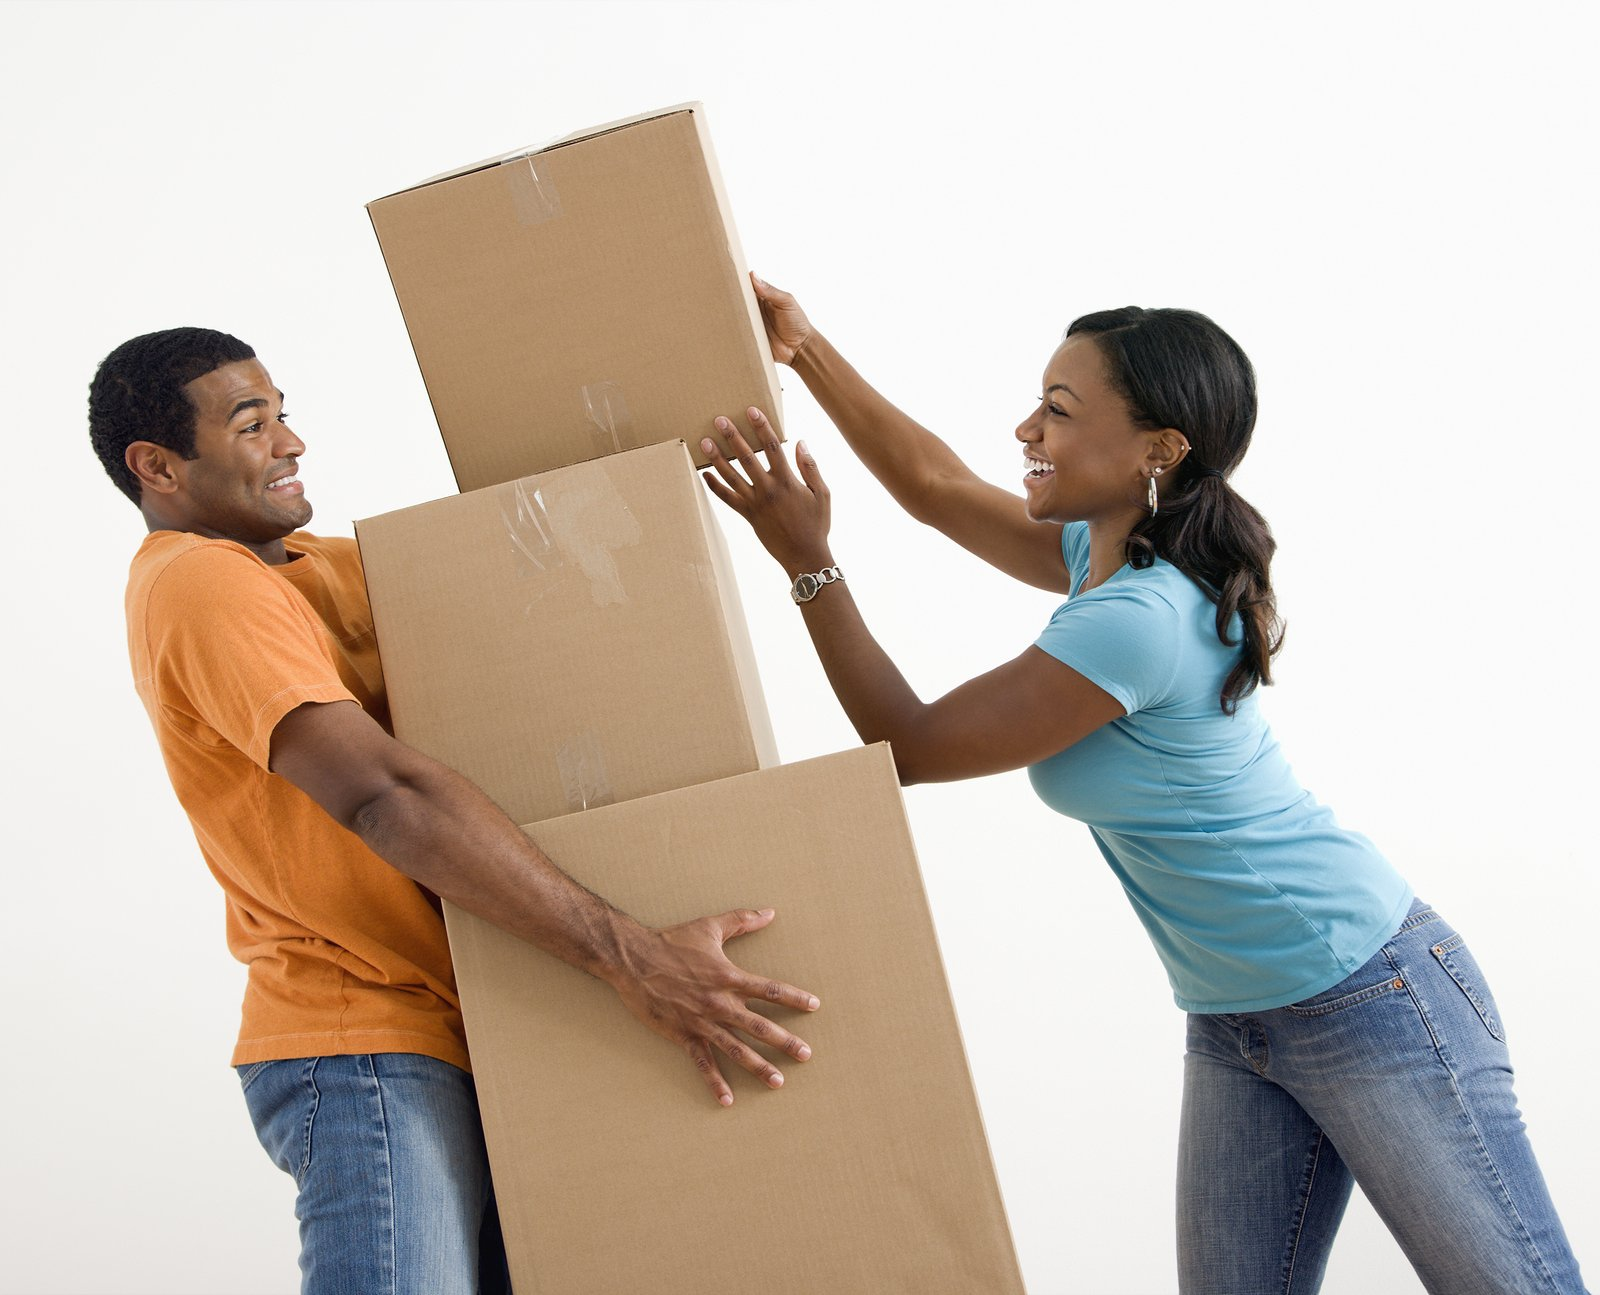 man-carrying-boxes-with-woman-thumb-1600x1295-136303